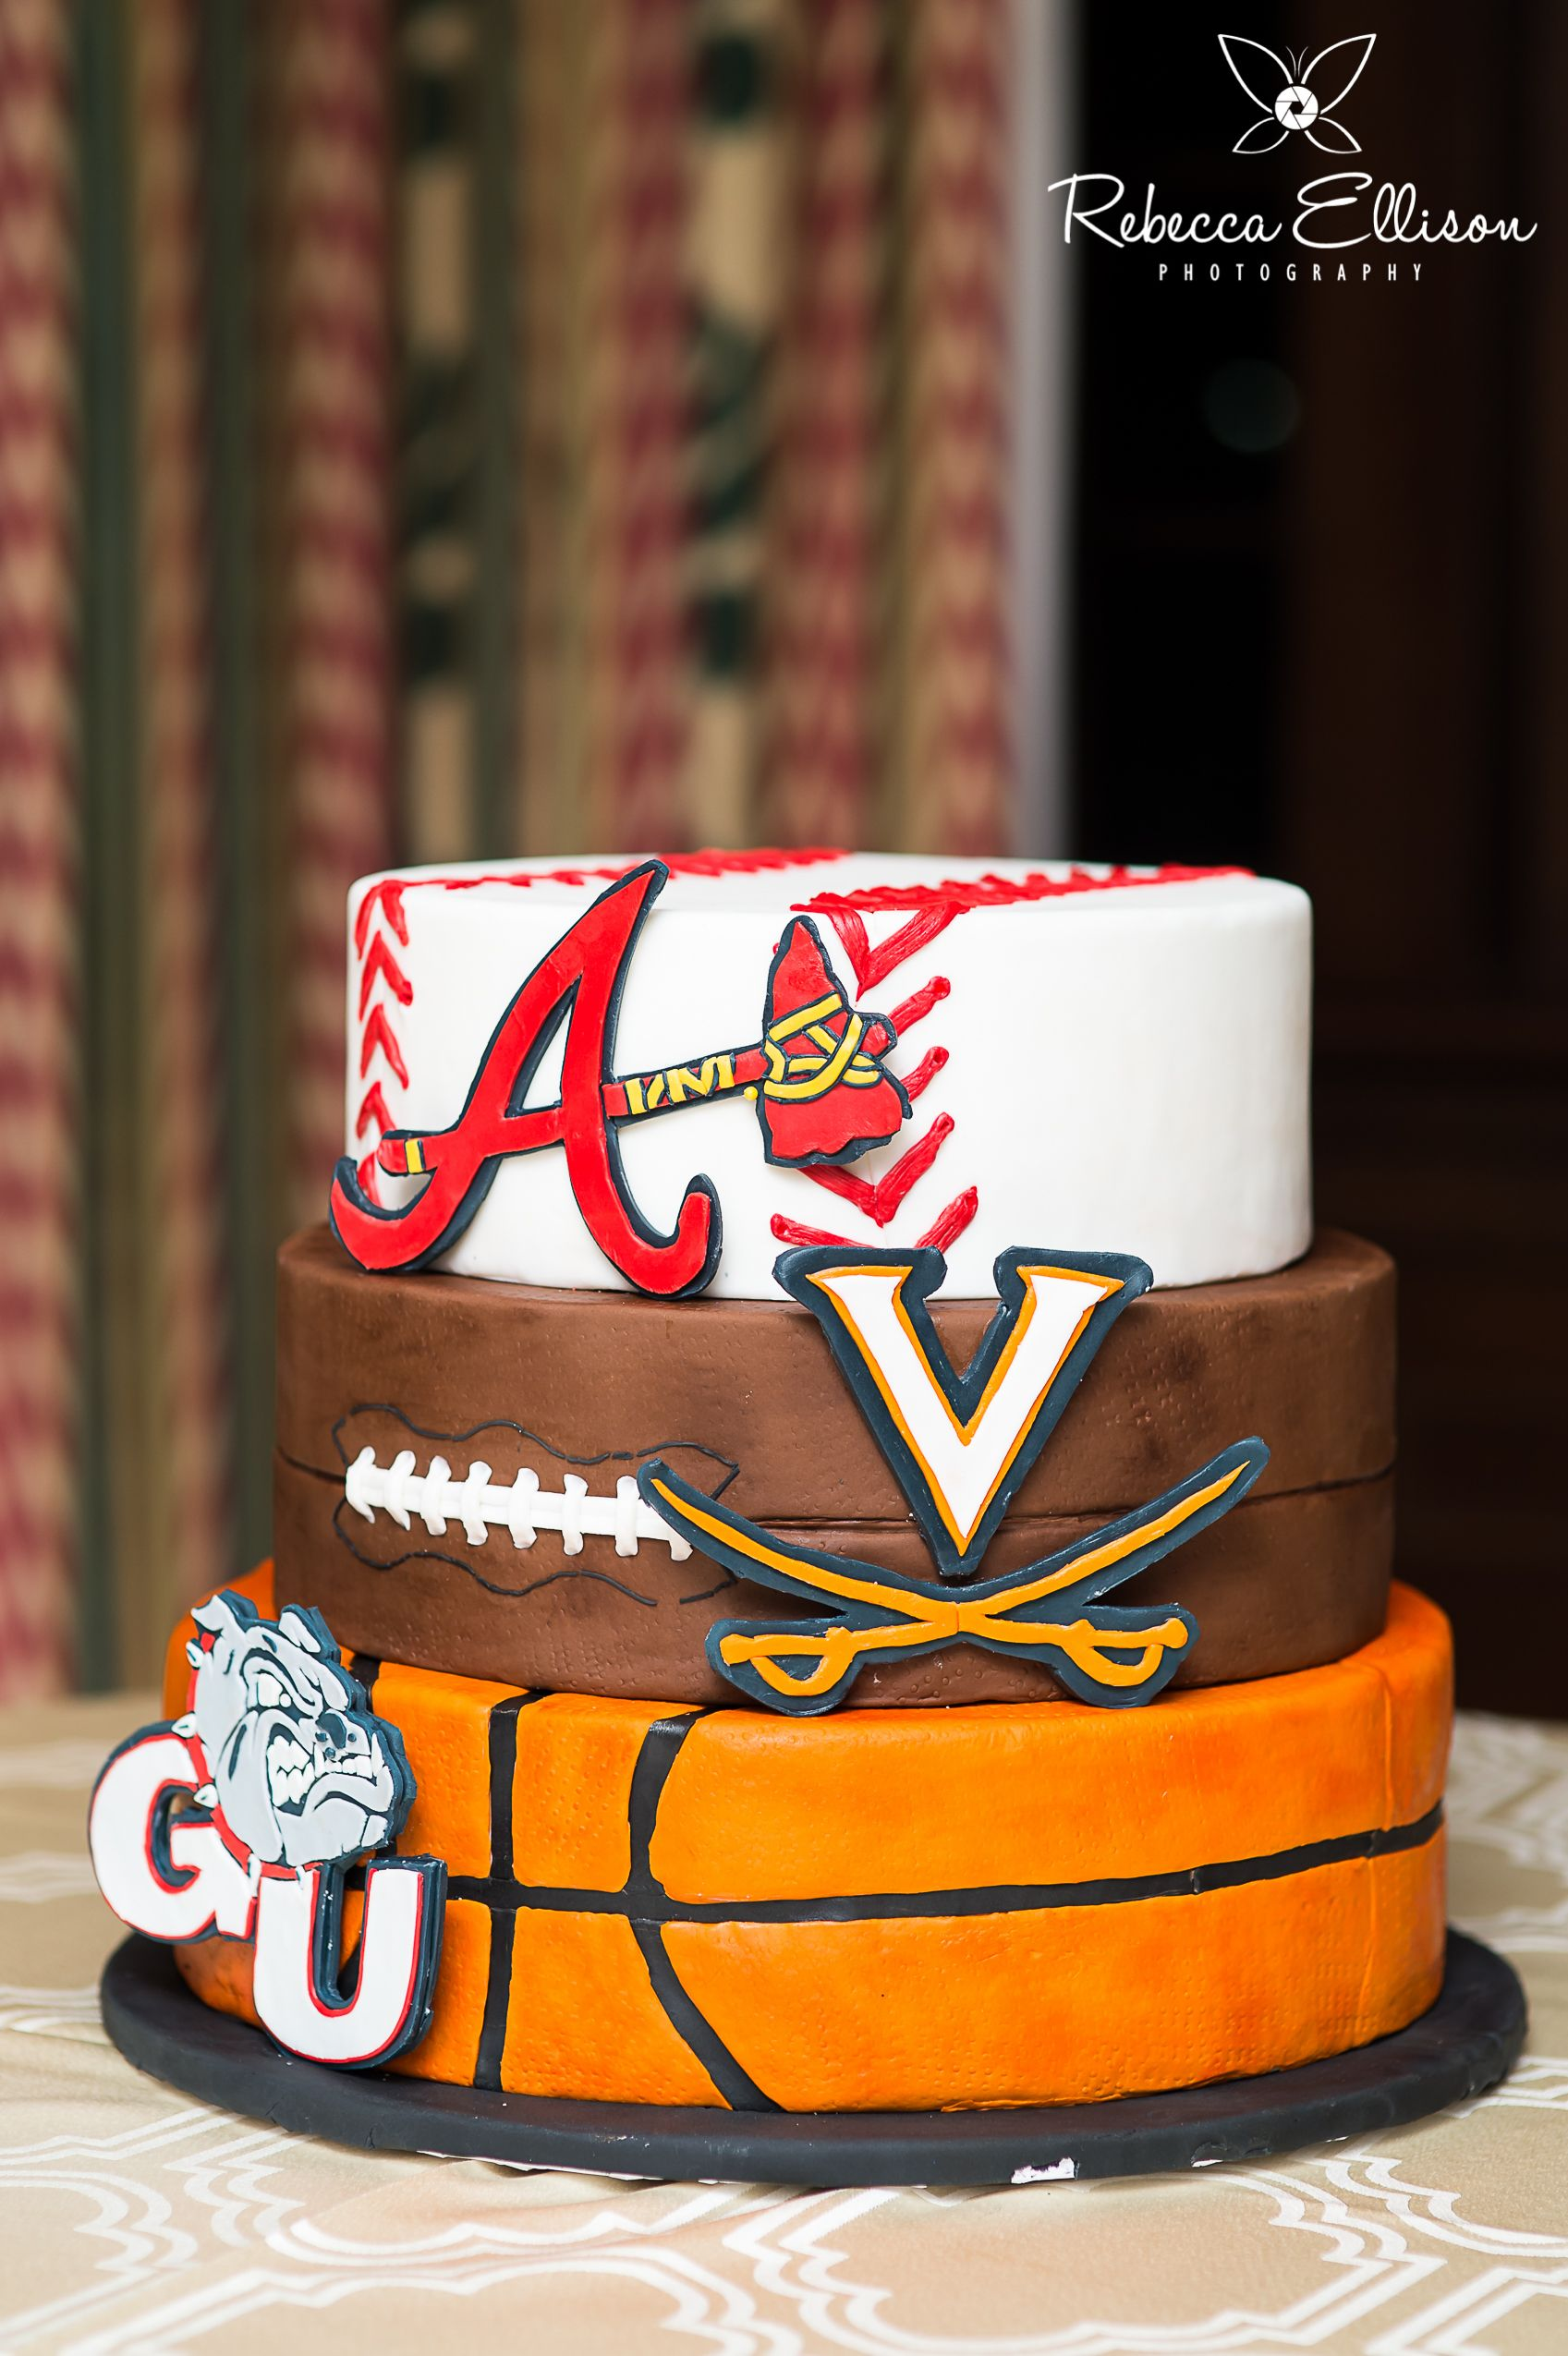 Grooms Cake Sports This One Different Teams Of Course Grooms Cake Alabama Grooms Cake Groomsman Cake